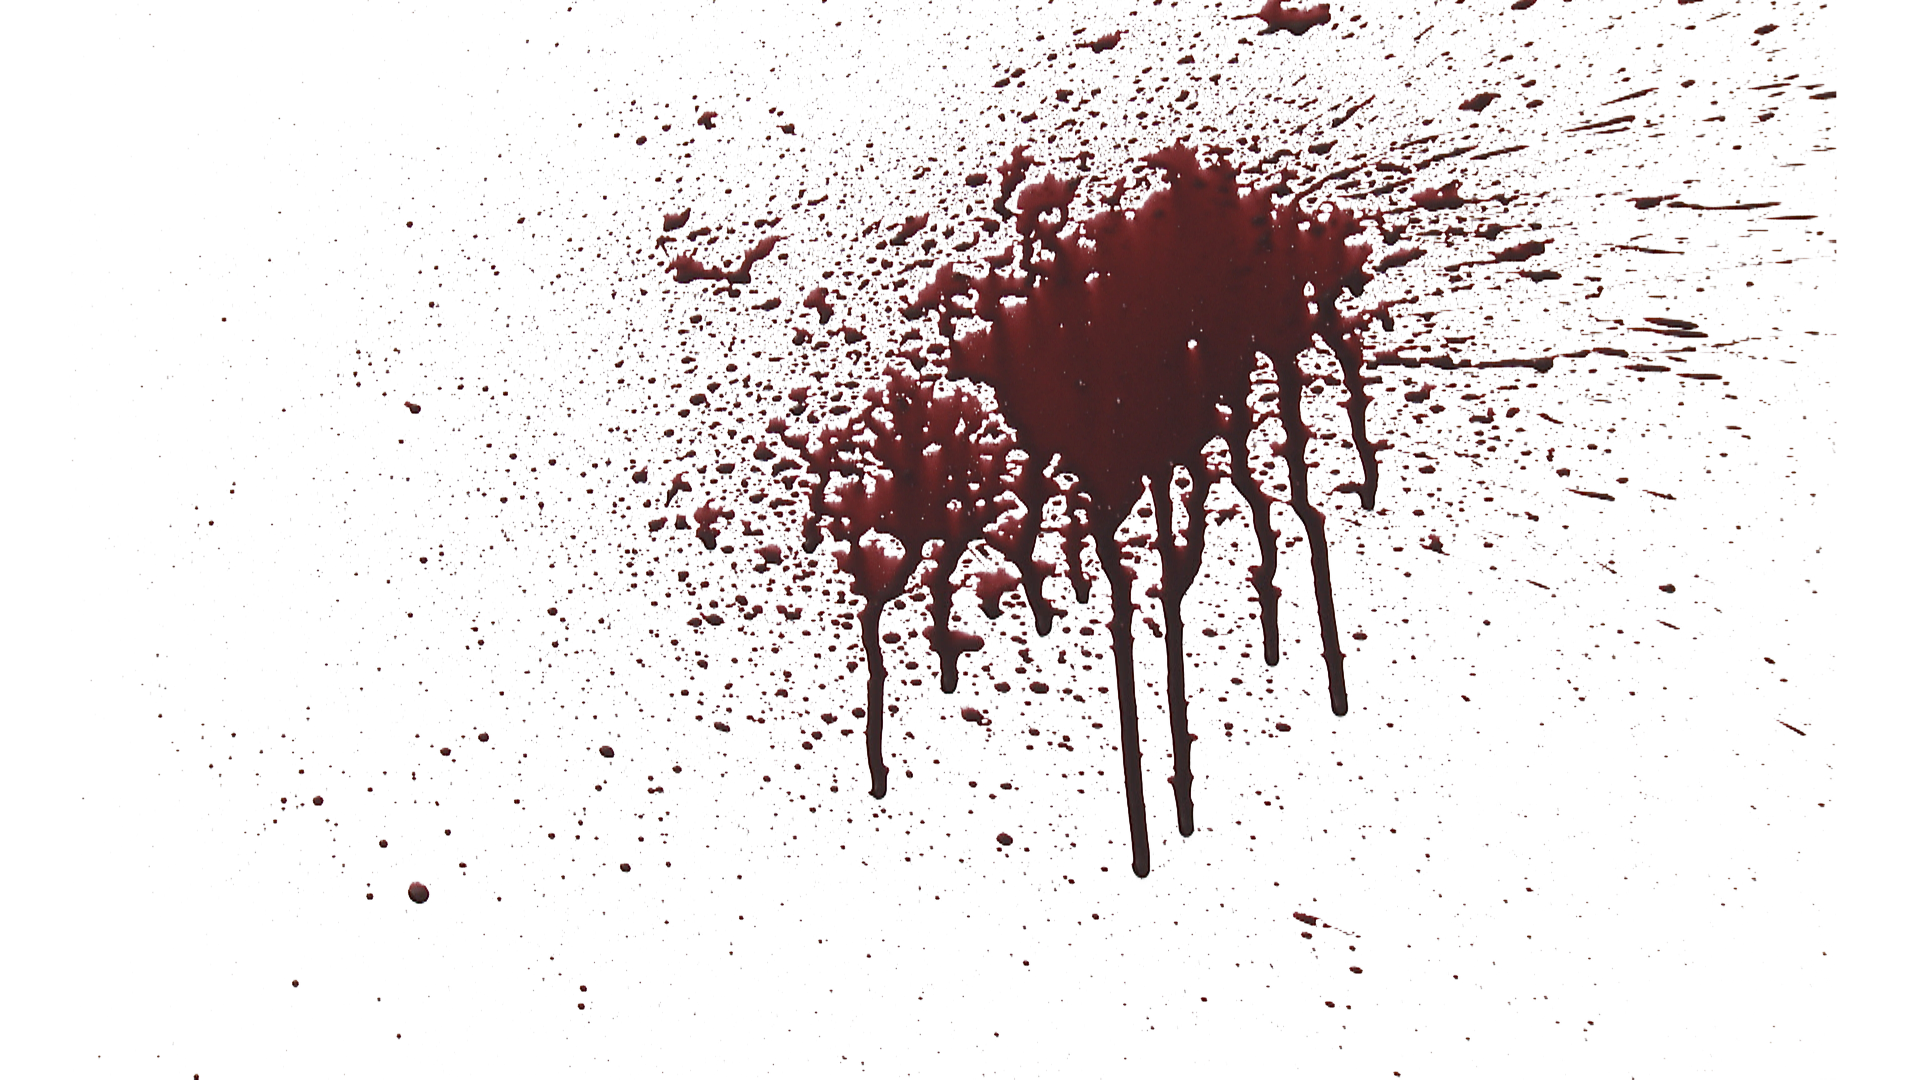 Blood spray png. Effect transparent images all